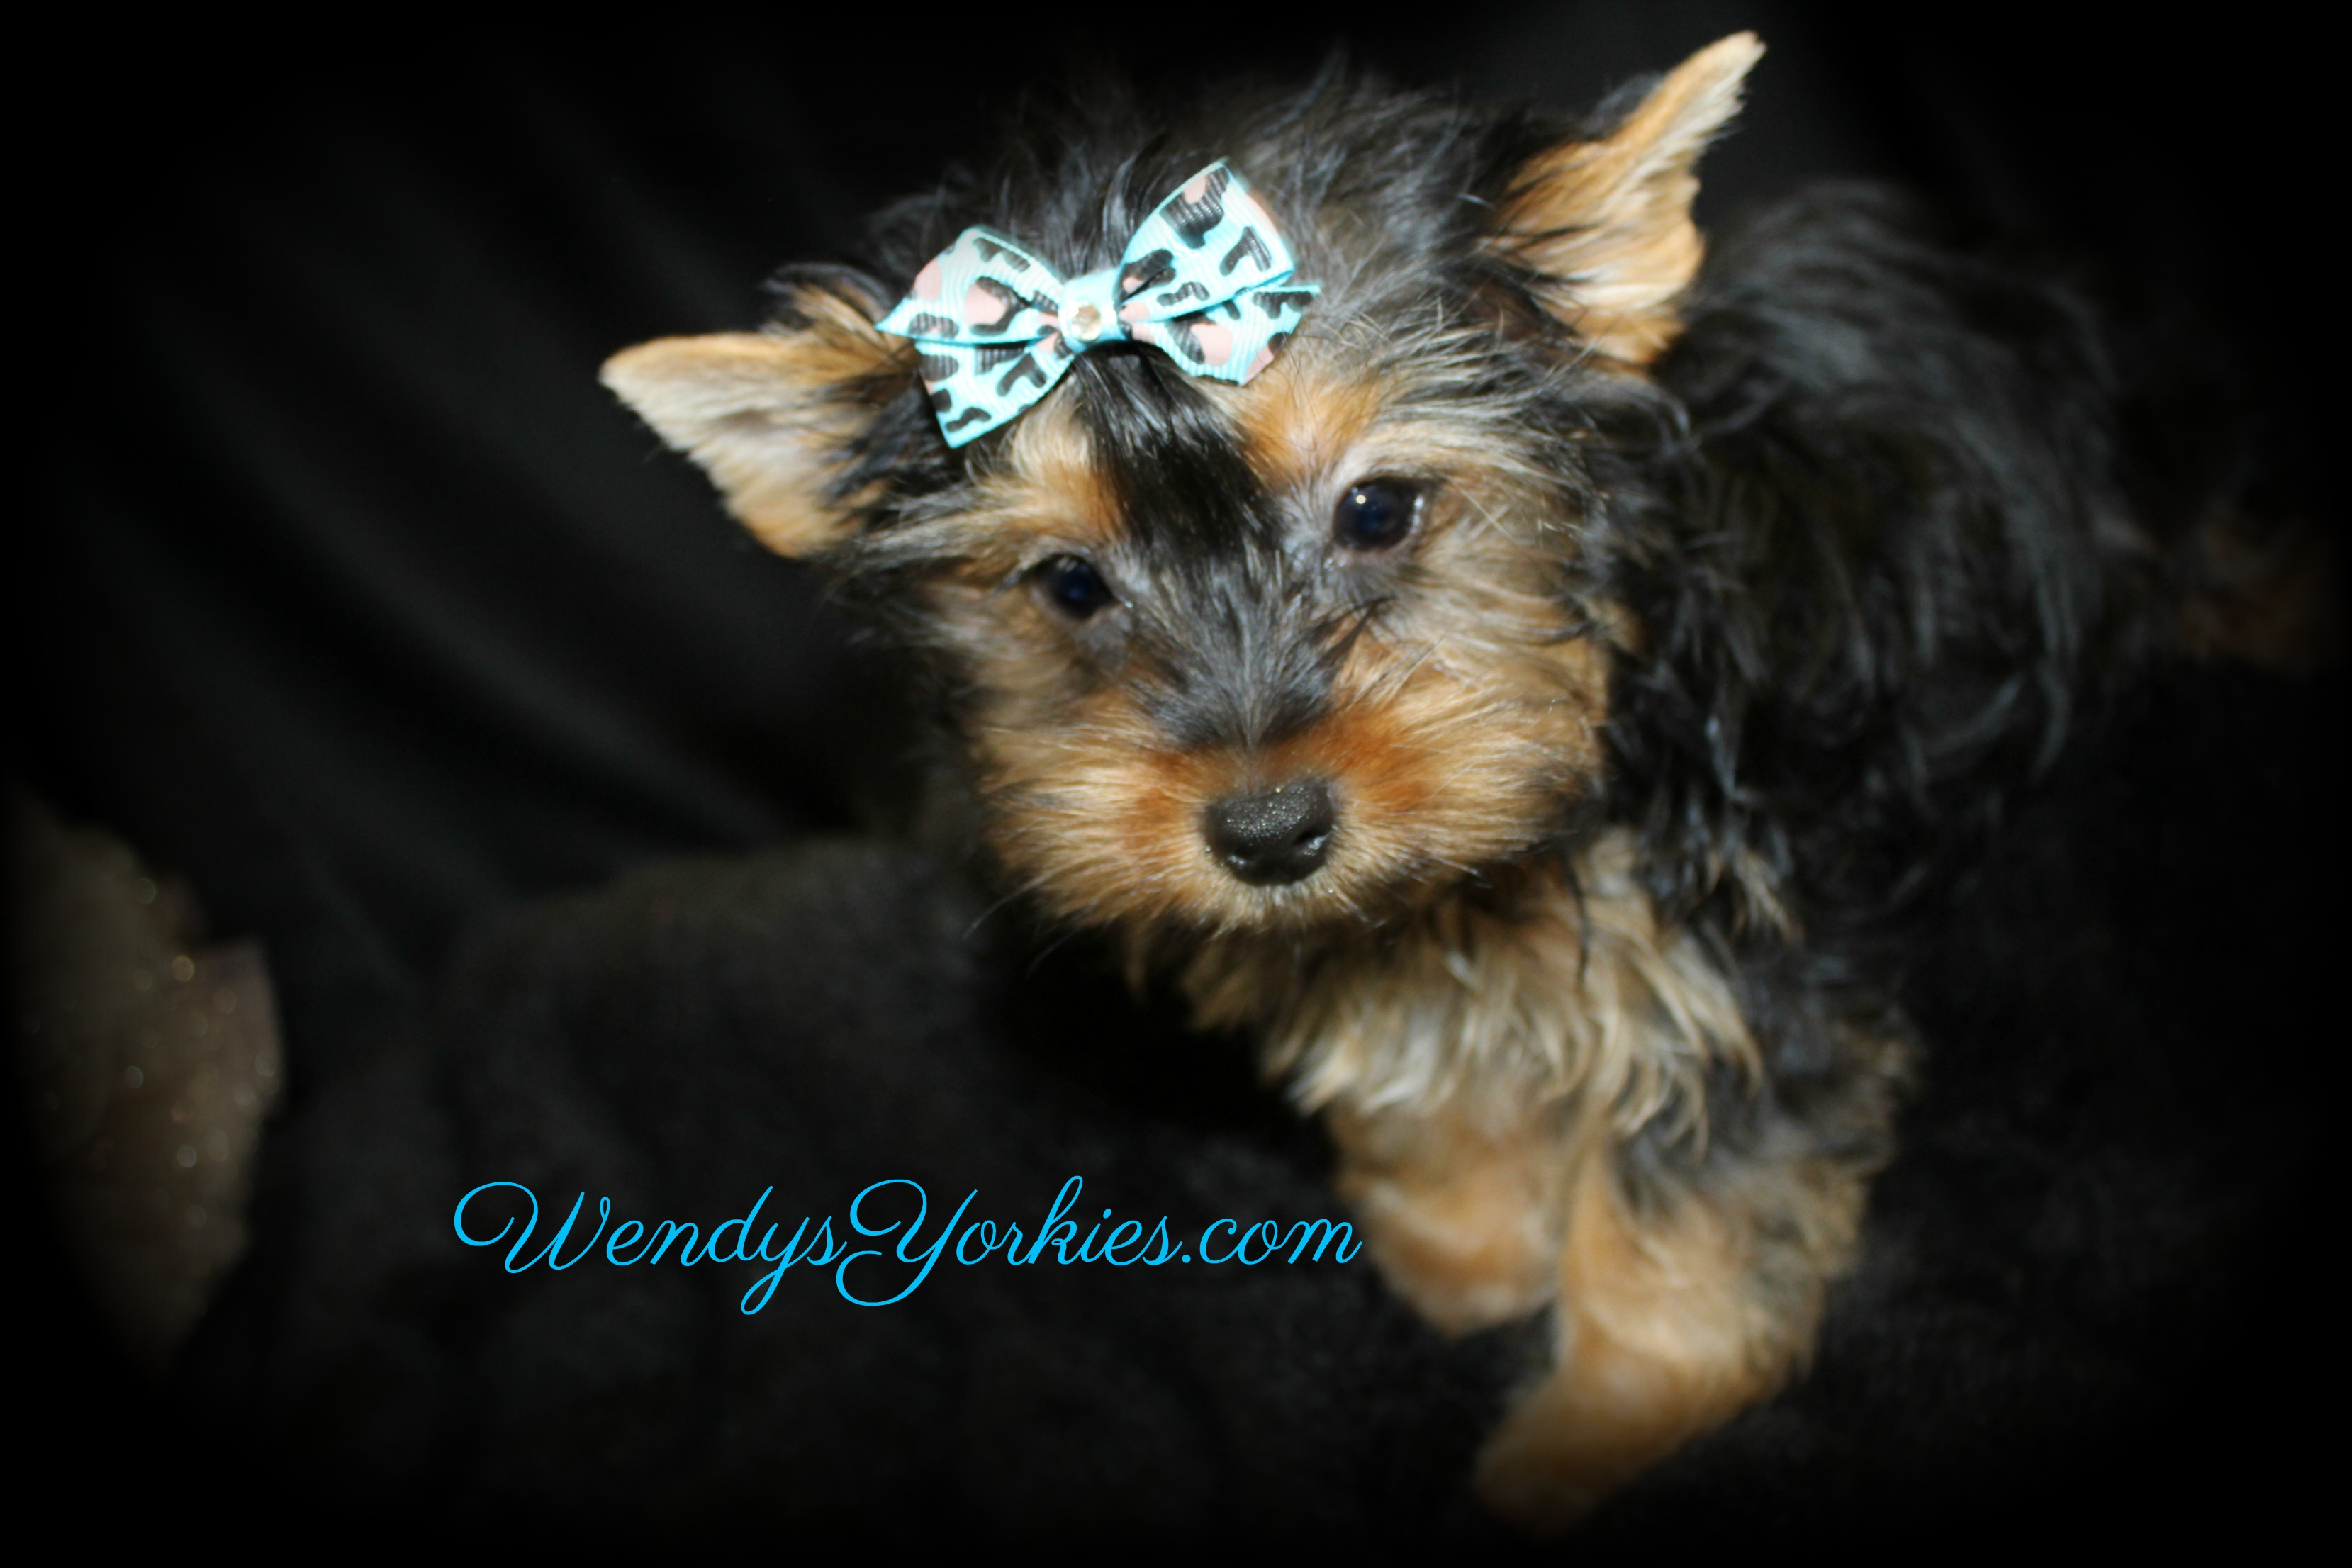 Teacup Male Yorkie puppy for sale, Anna m1, WendysYorkies.com